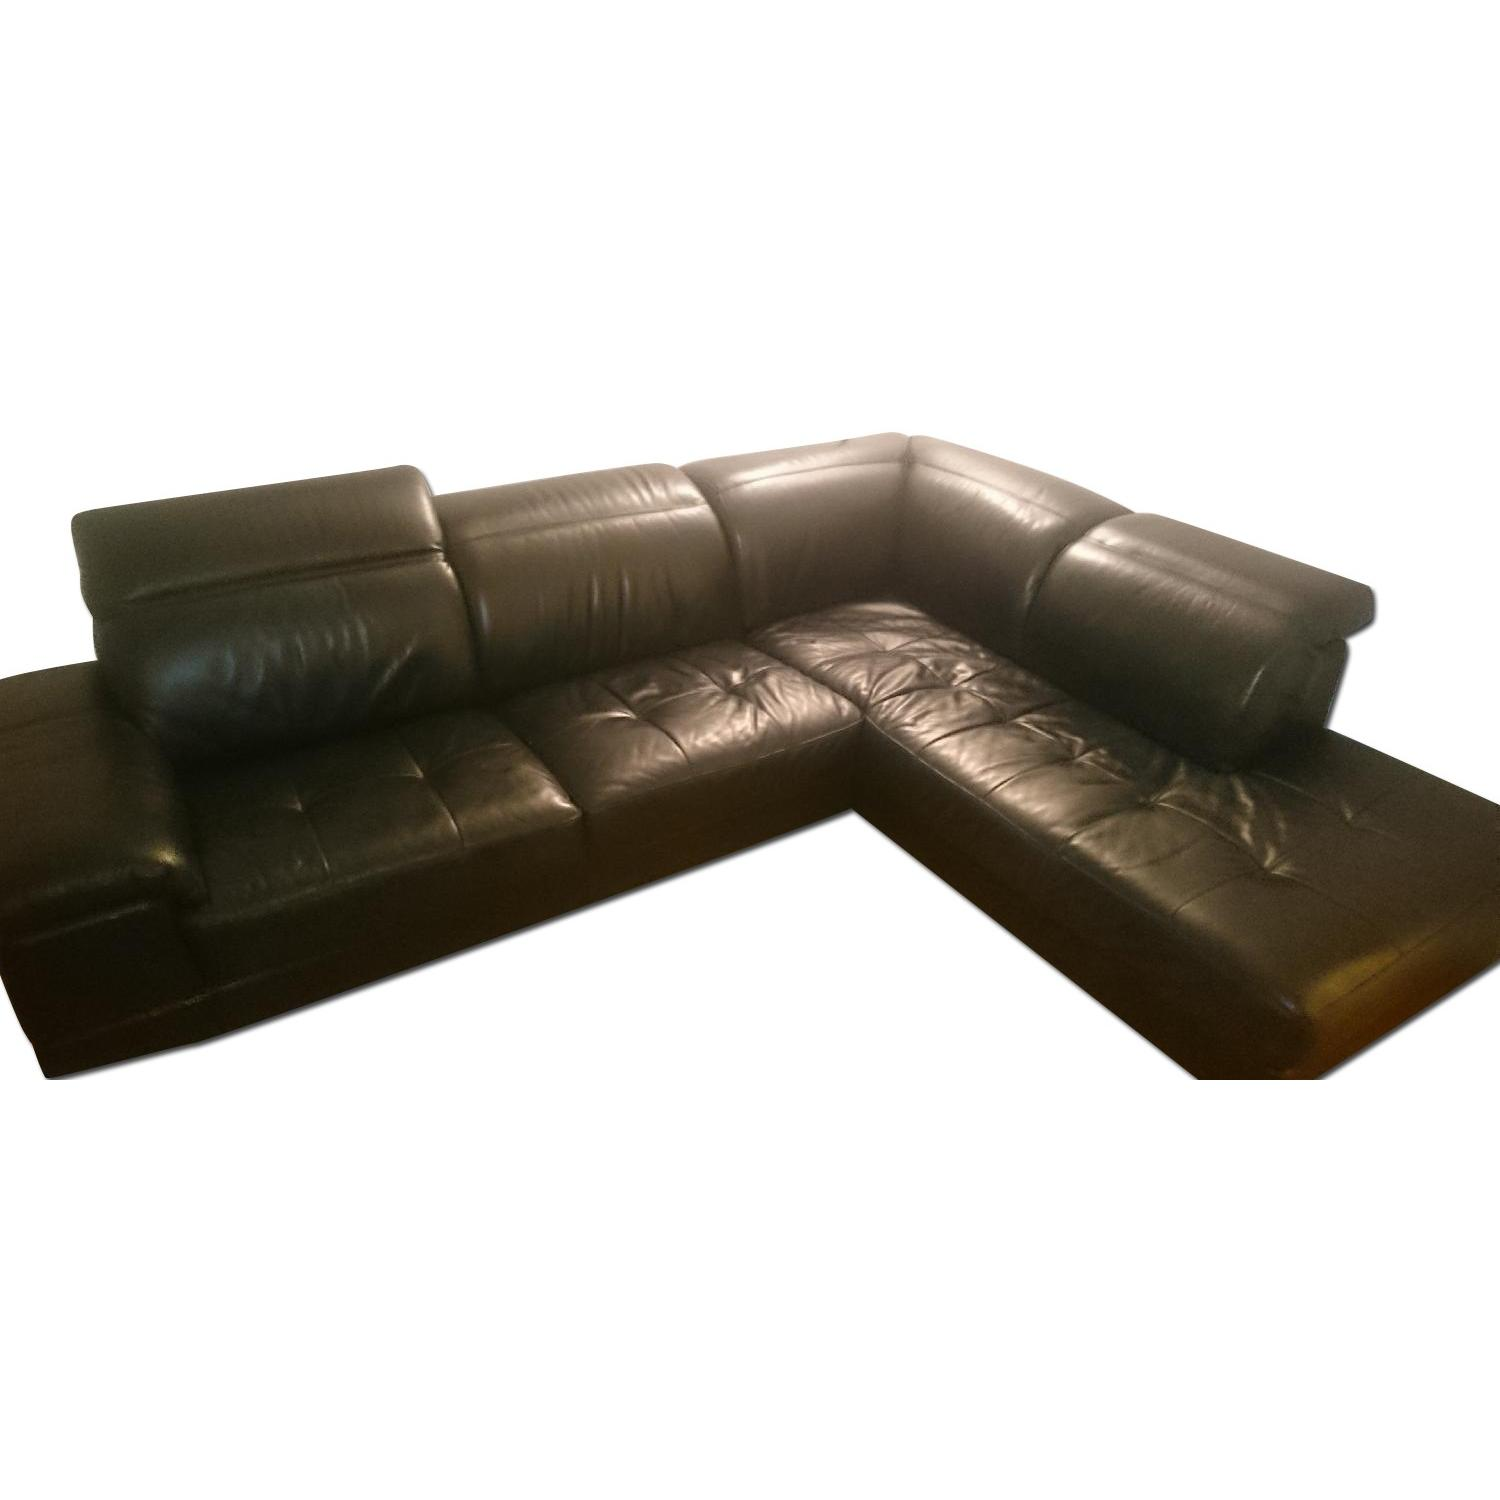 J&M Furniture Black Italian Leather Sectional Couch - image-0